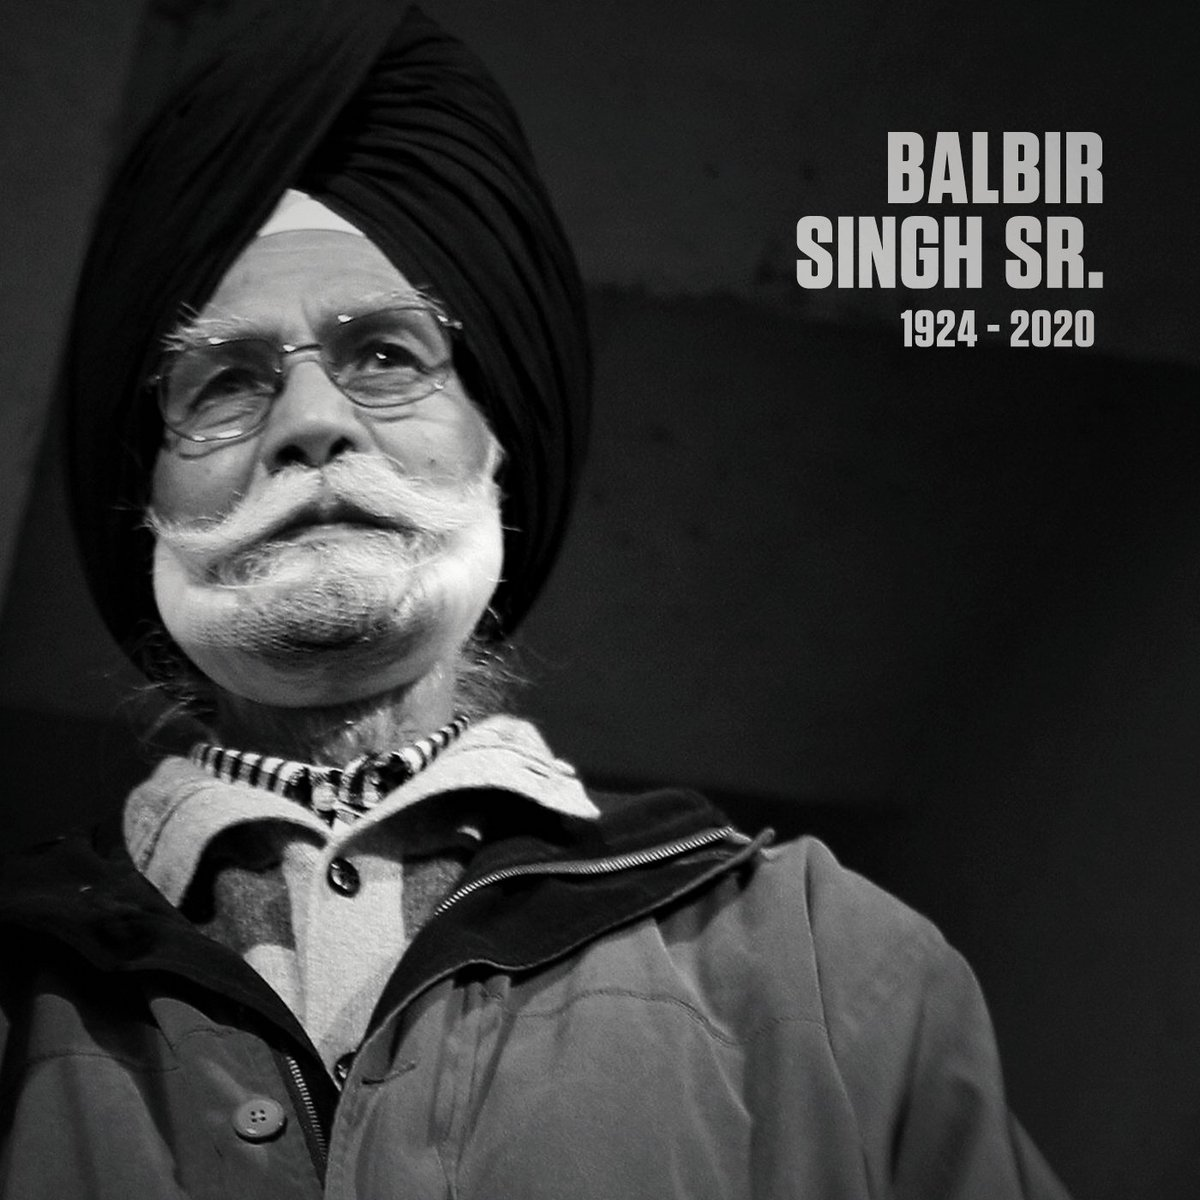 Balbir Singh Sr., a three-time Olympic gold medallist, one of Indian hockeys greatest players, has died of multiple health issues. He was 95. es.pn/3d1eudk